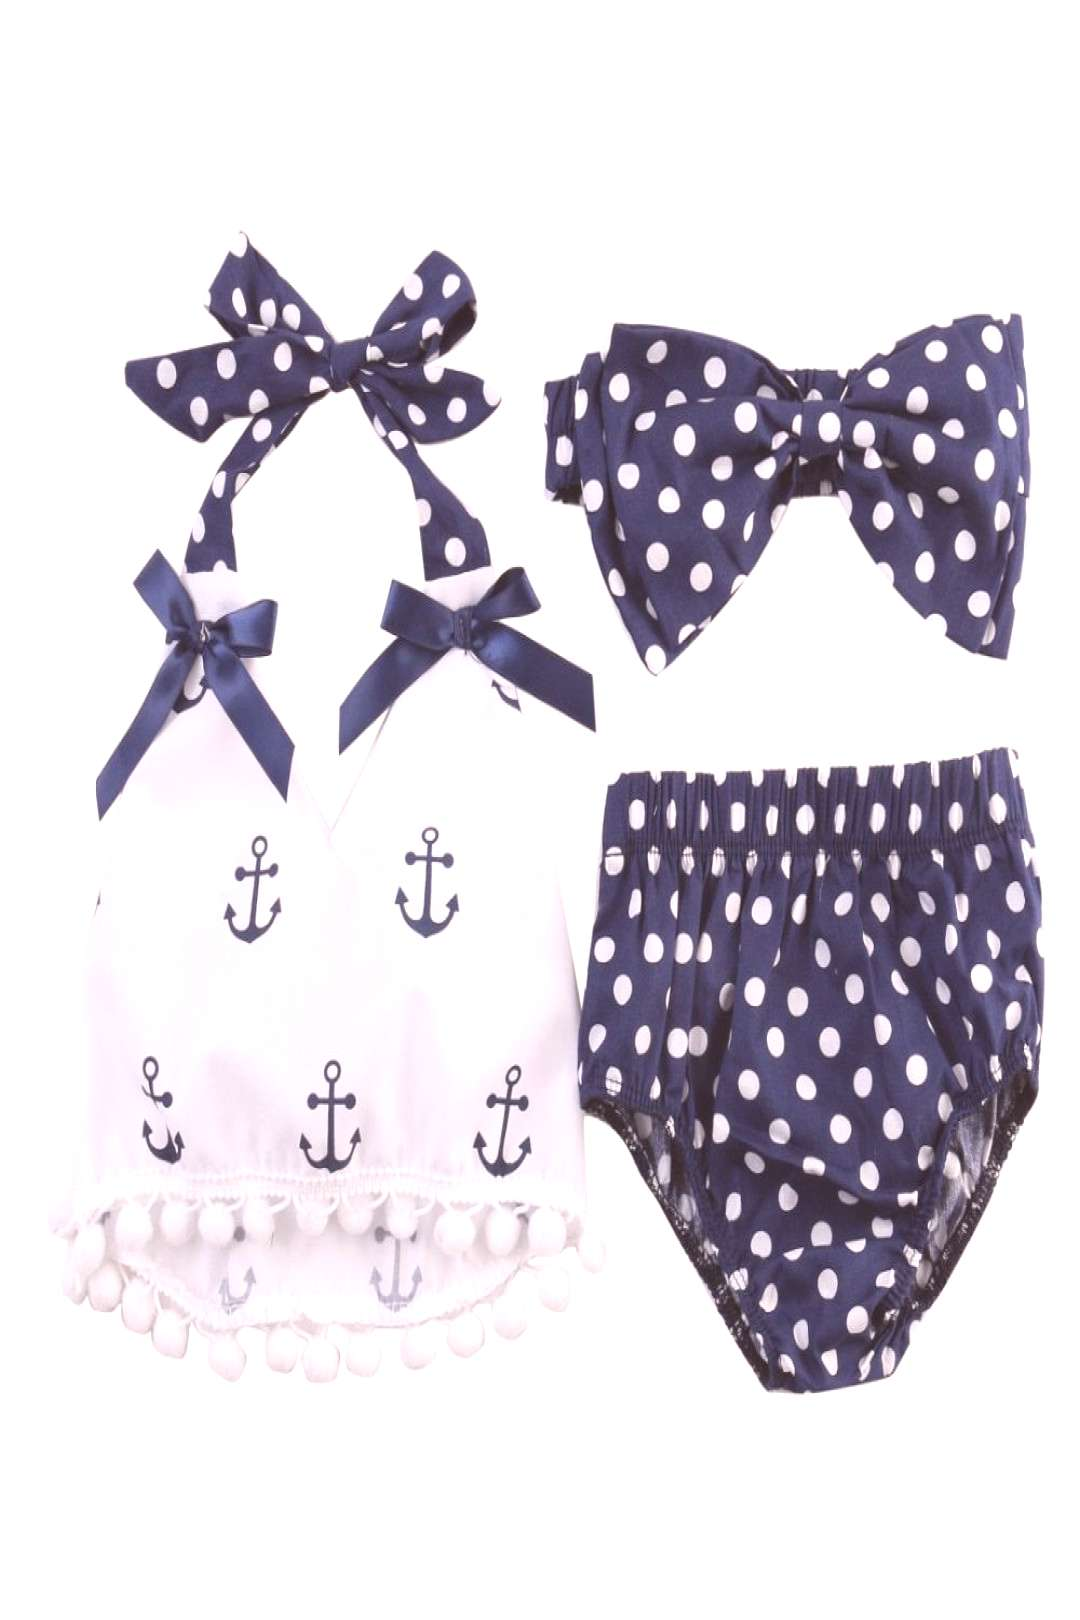 2017 Summer Baby Girls Rompers Clothes Sets Anchors Bow Top + Polka Dot Briefs + Head band 3pcs Sle